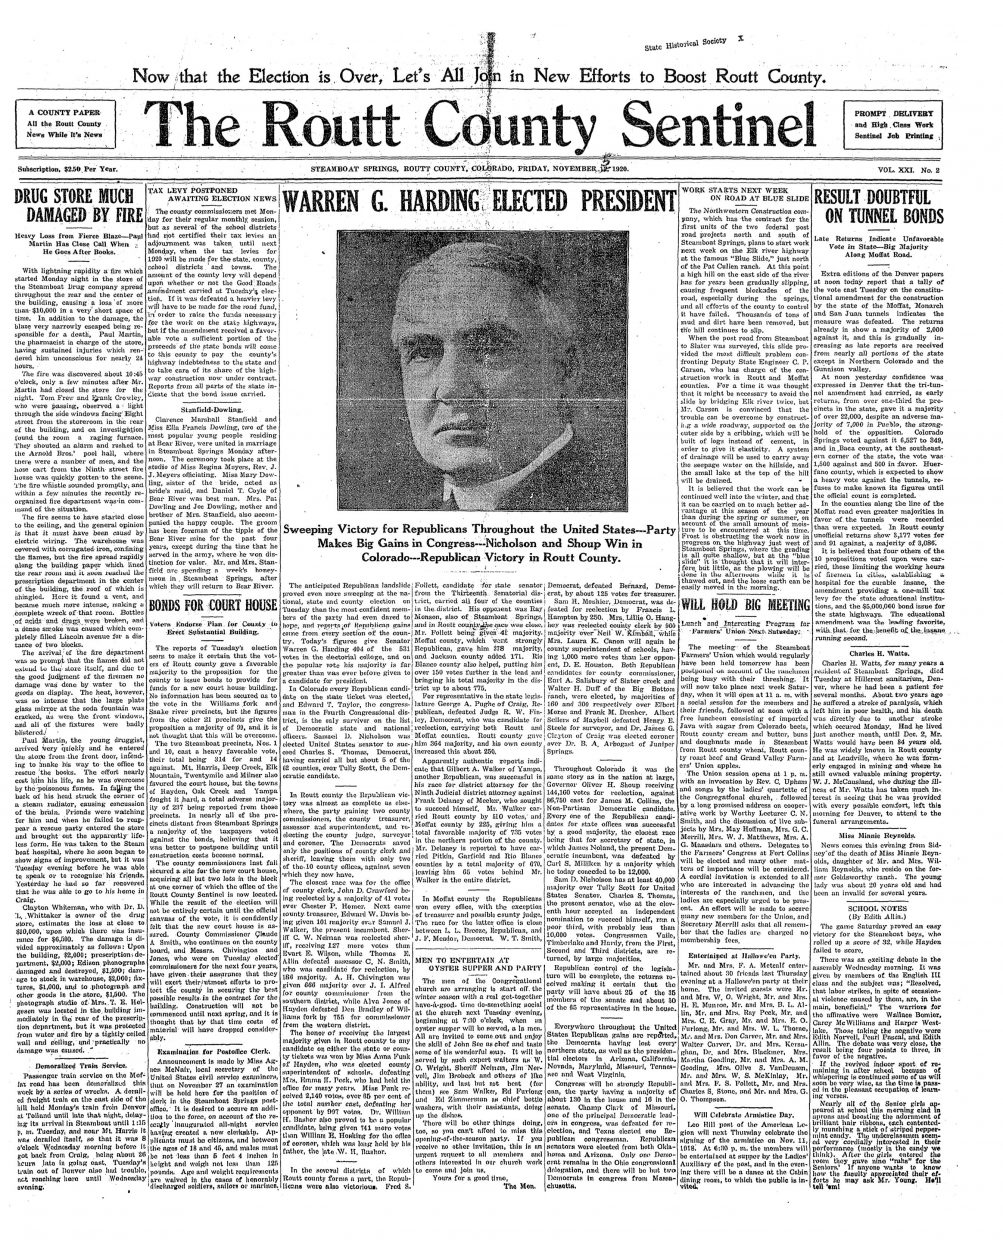 Front page of 1920 Routt County Sentinel